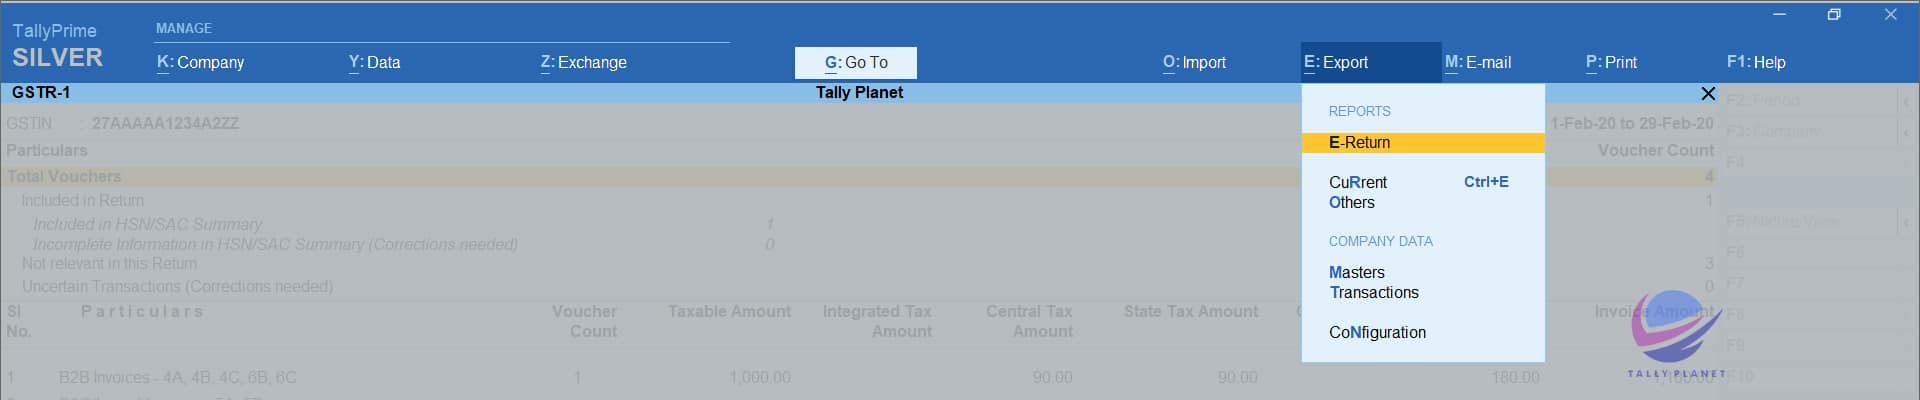 how-to-export-gstr-1-from-tally-prime